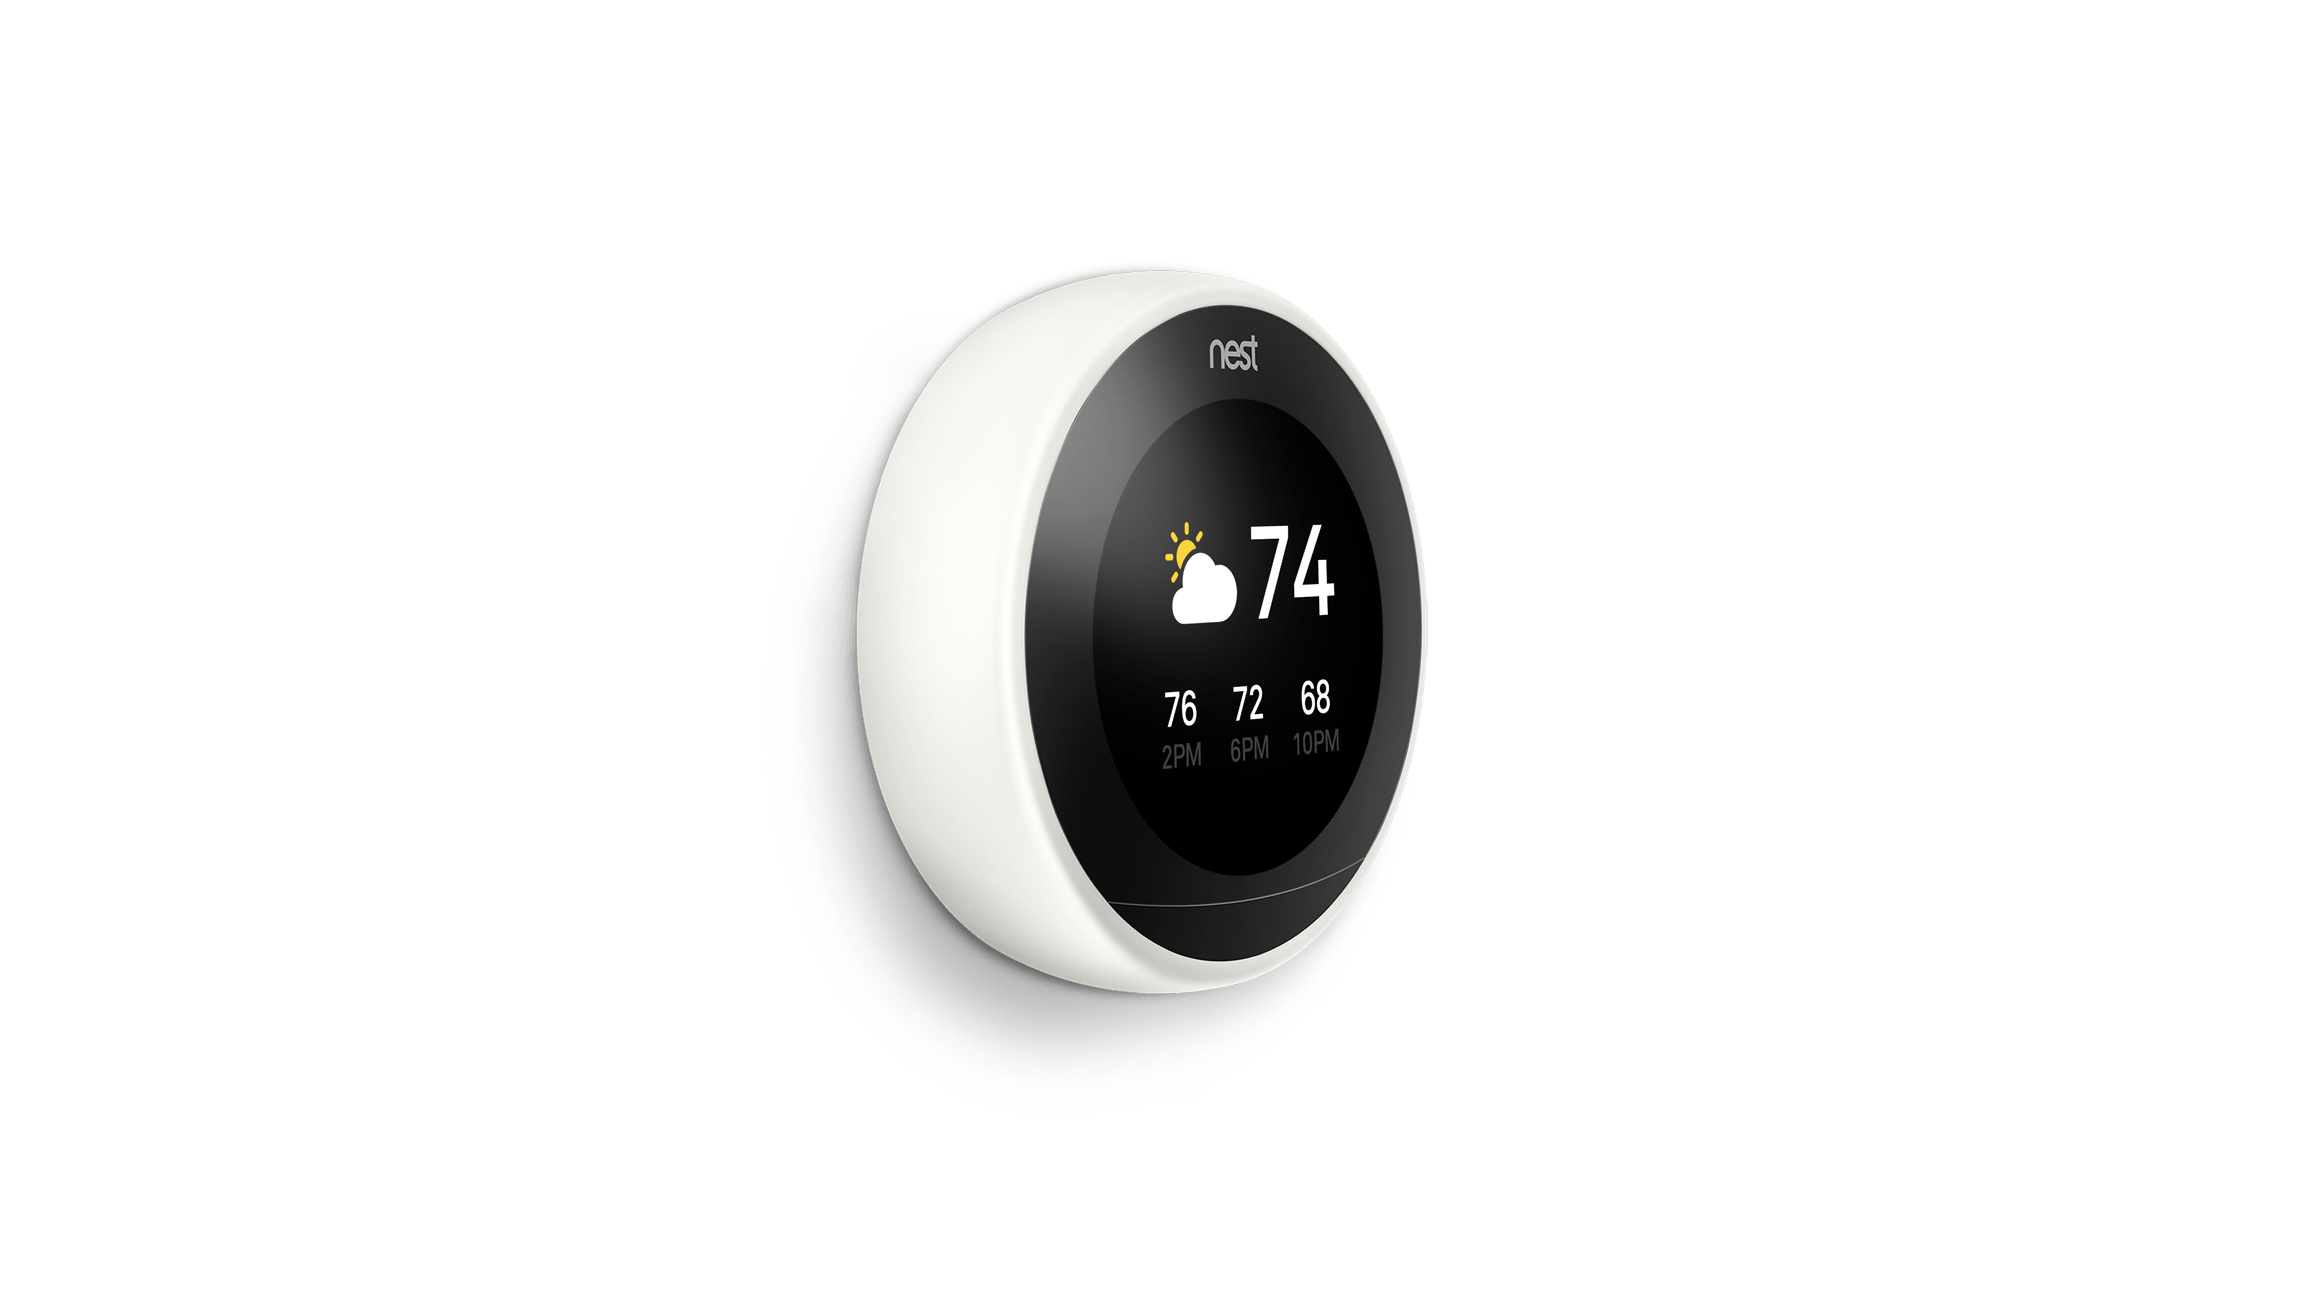 buy nest thermostat toronto best prices. Black Bedroom Furniture Sets. Home Design Ideas